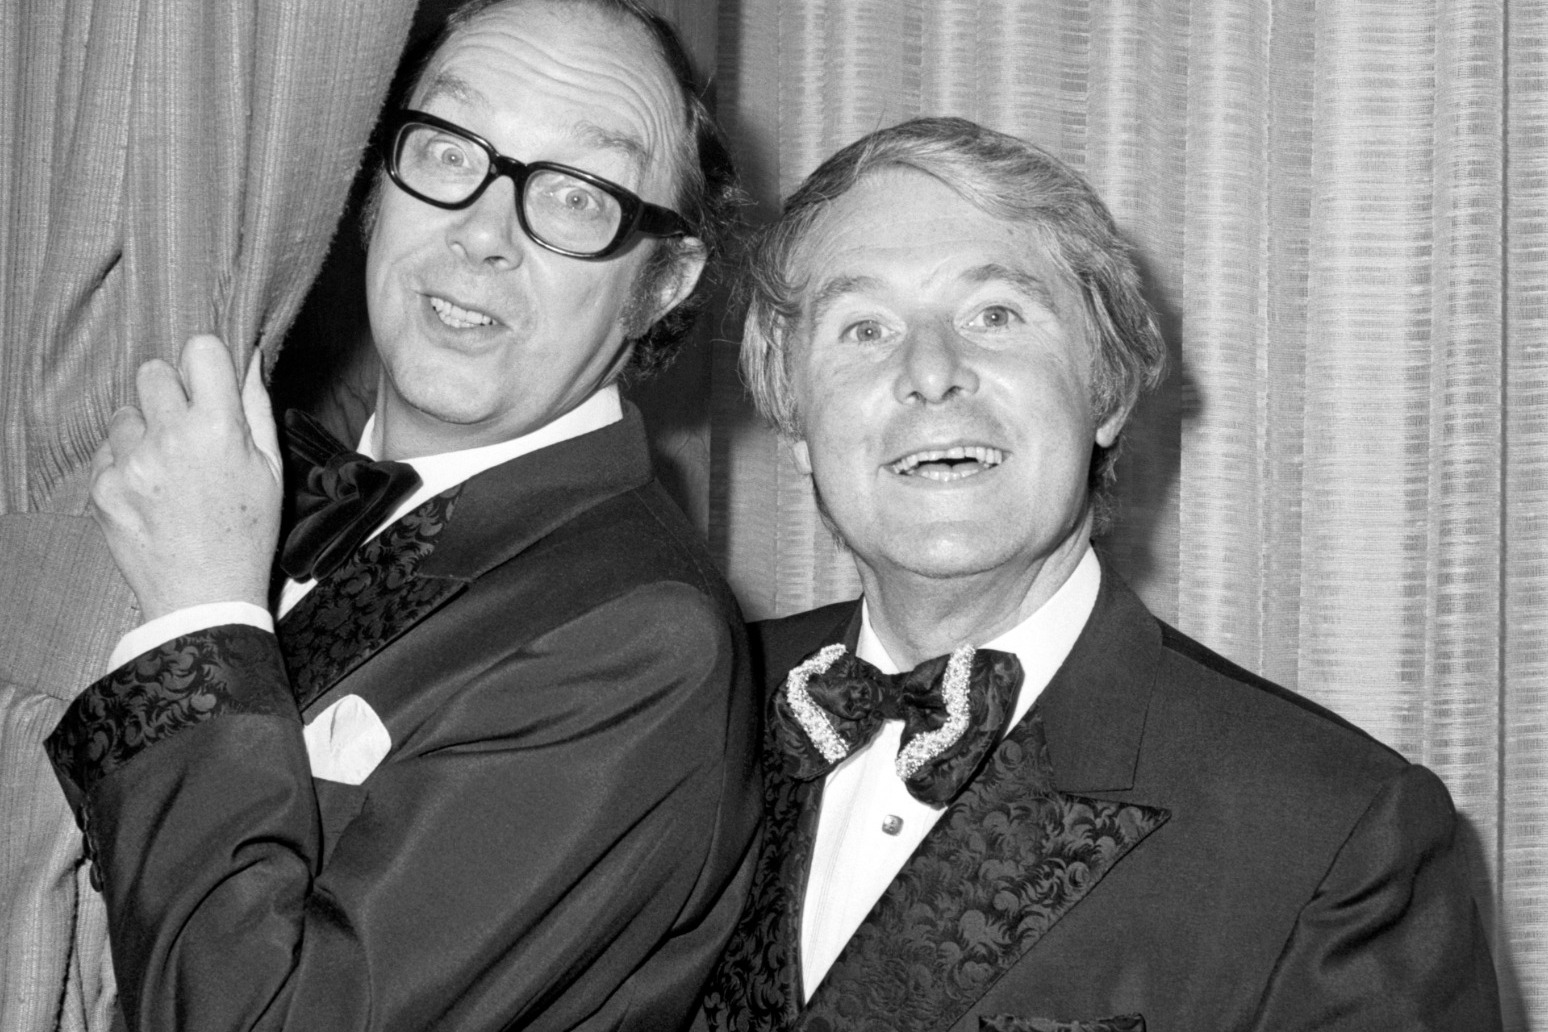 Morecambe and Wise found Monty Python boring